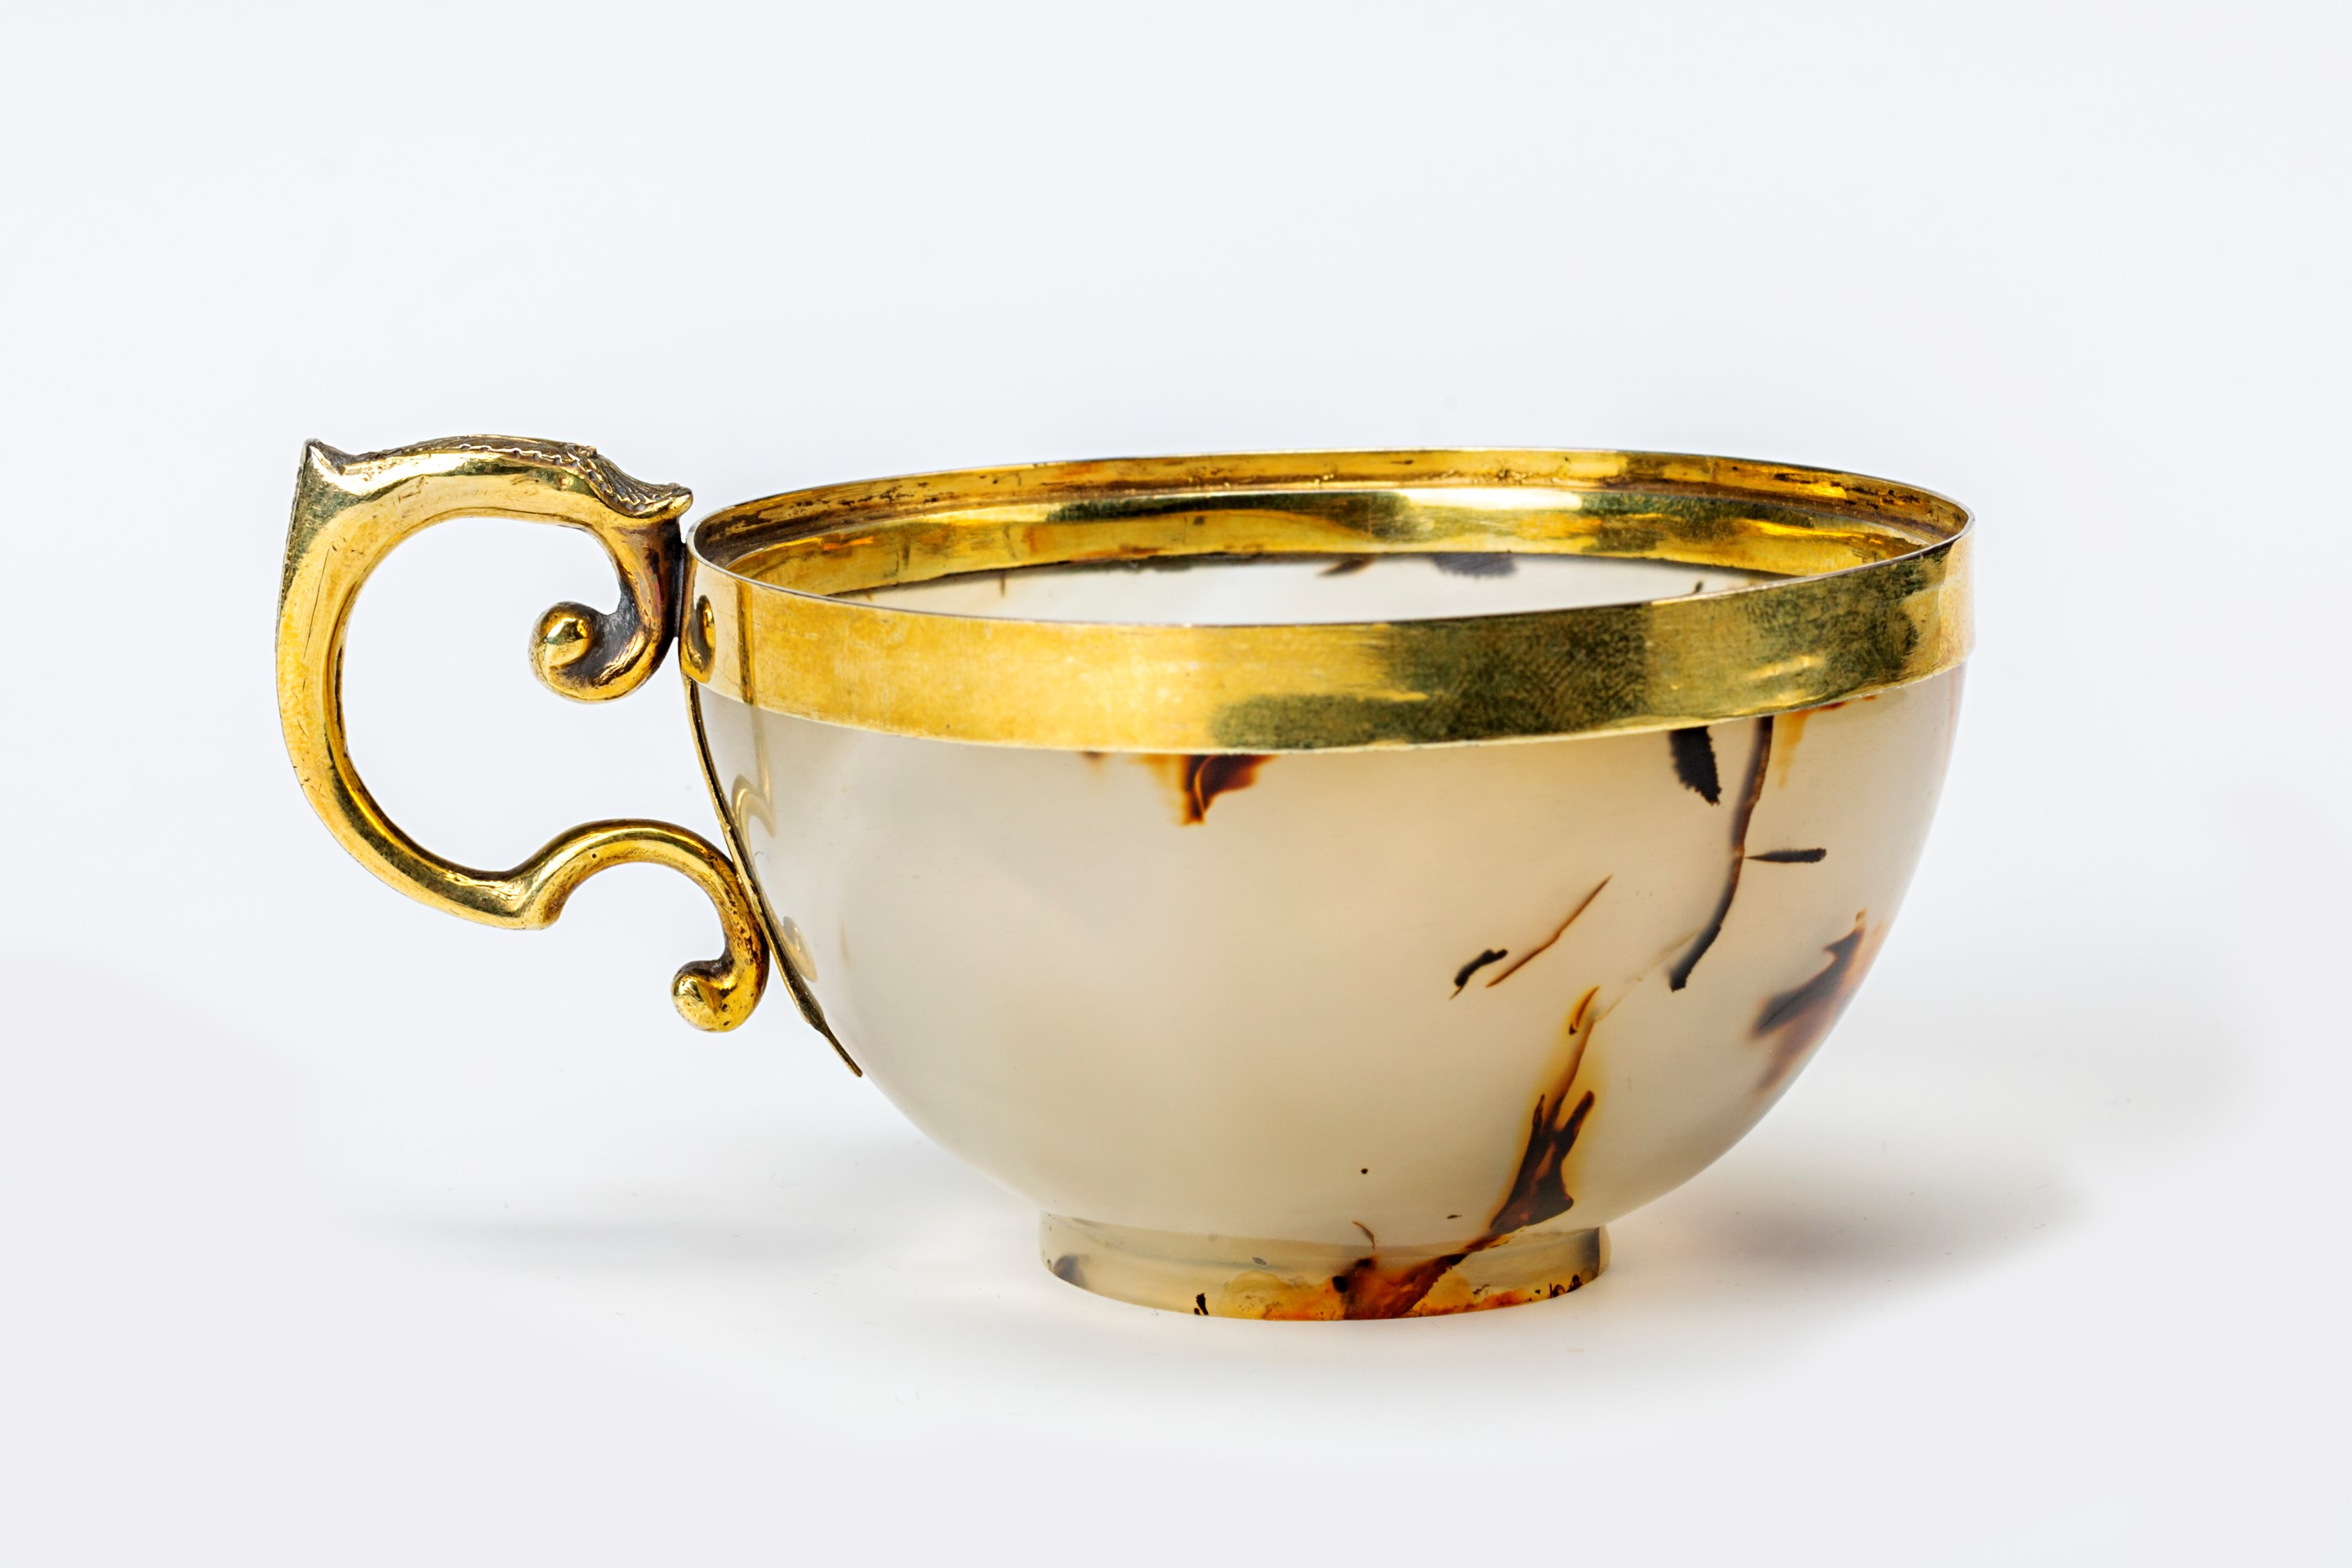 A silver-gilt mounted chalcedony teacup, 17th Century.